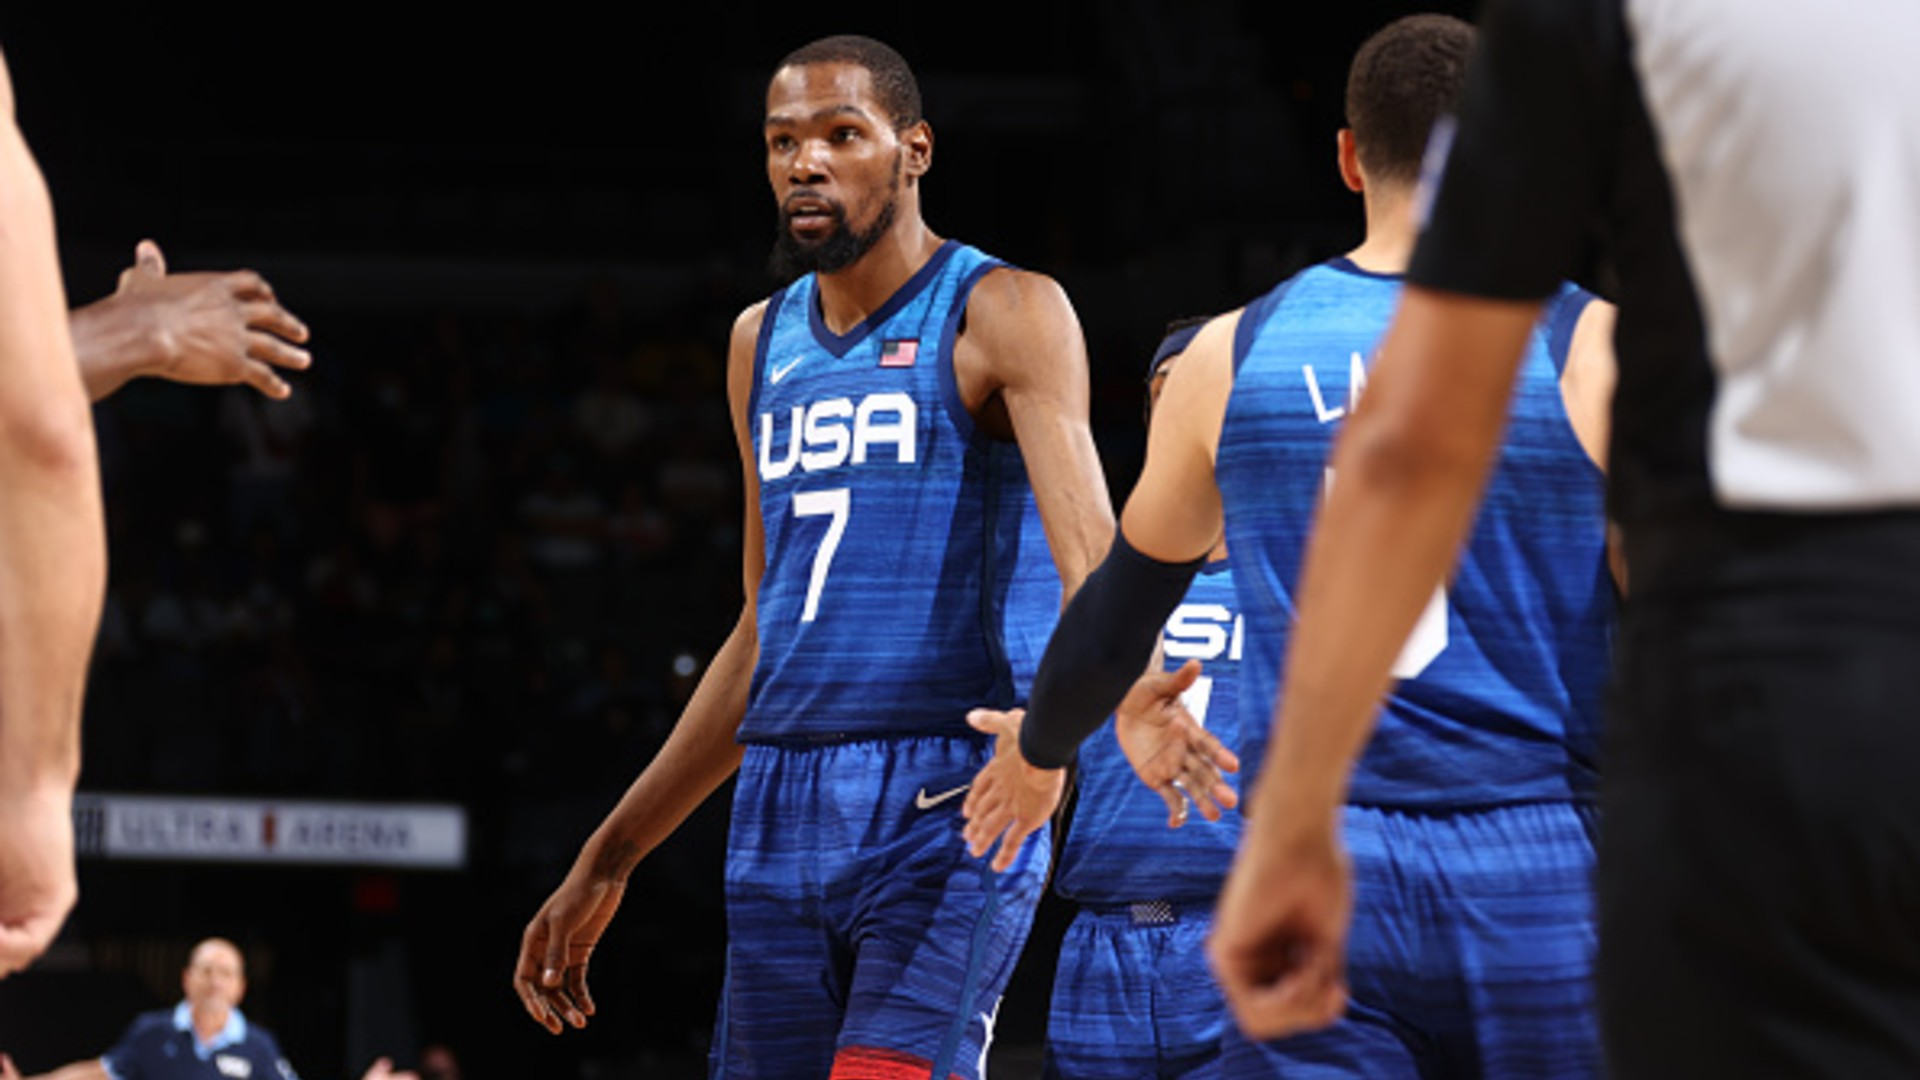 USA routs Argentina for 1st exhibition win